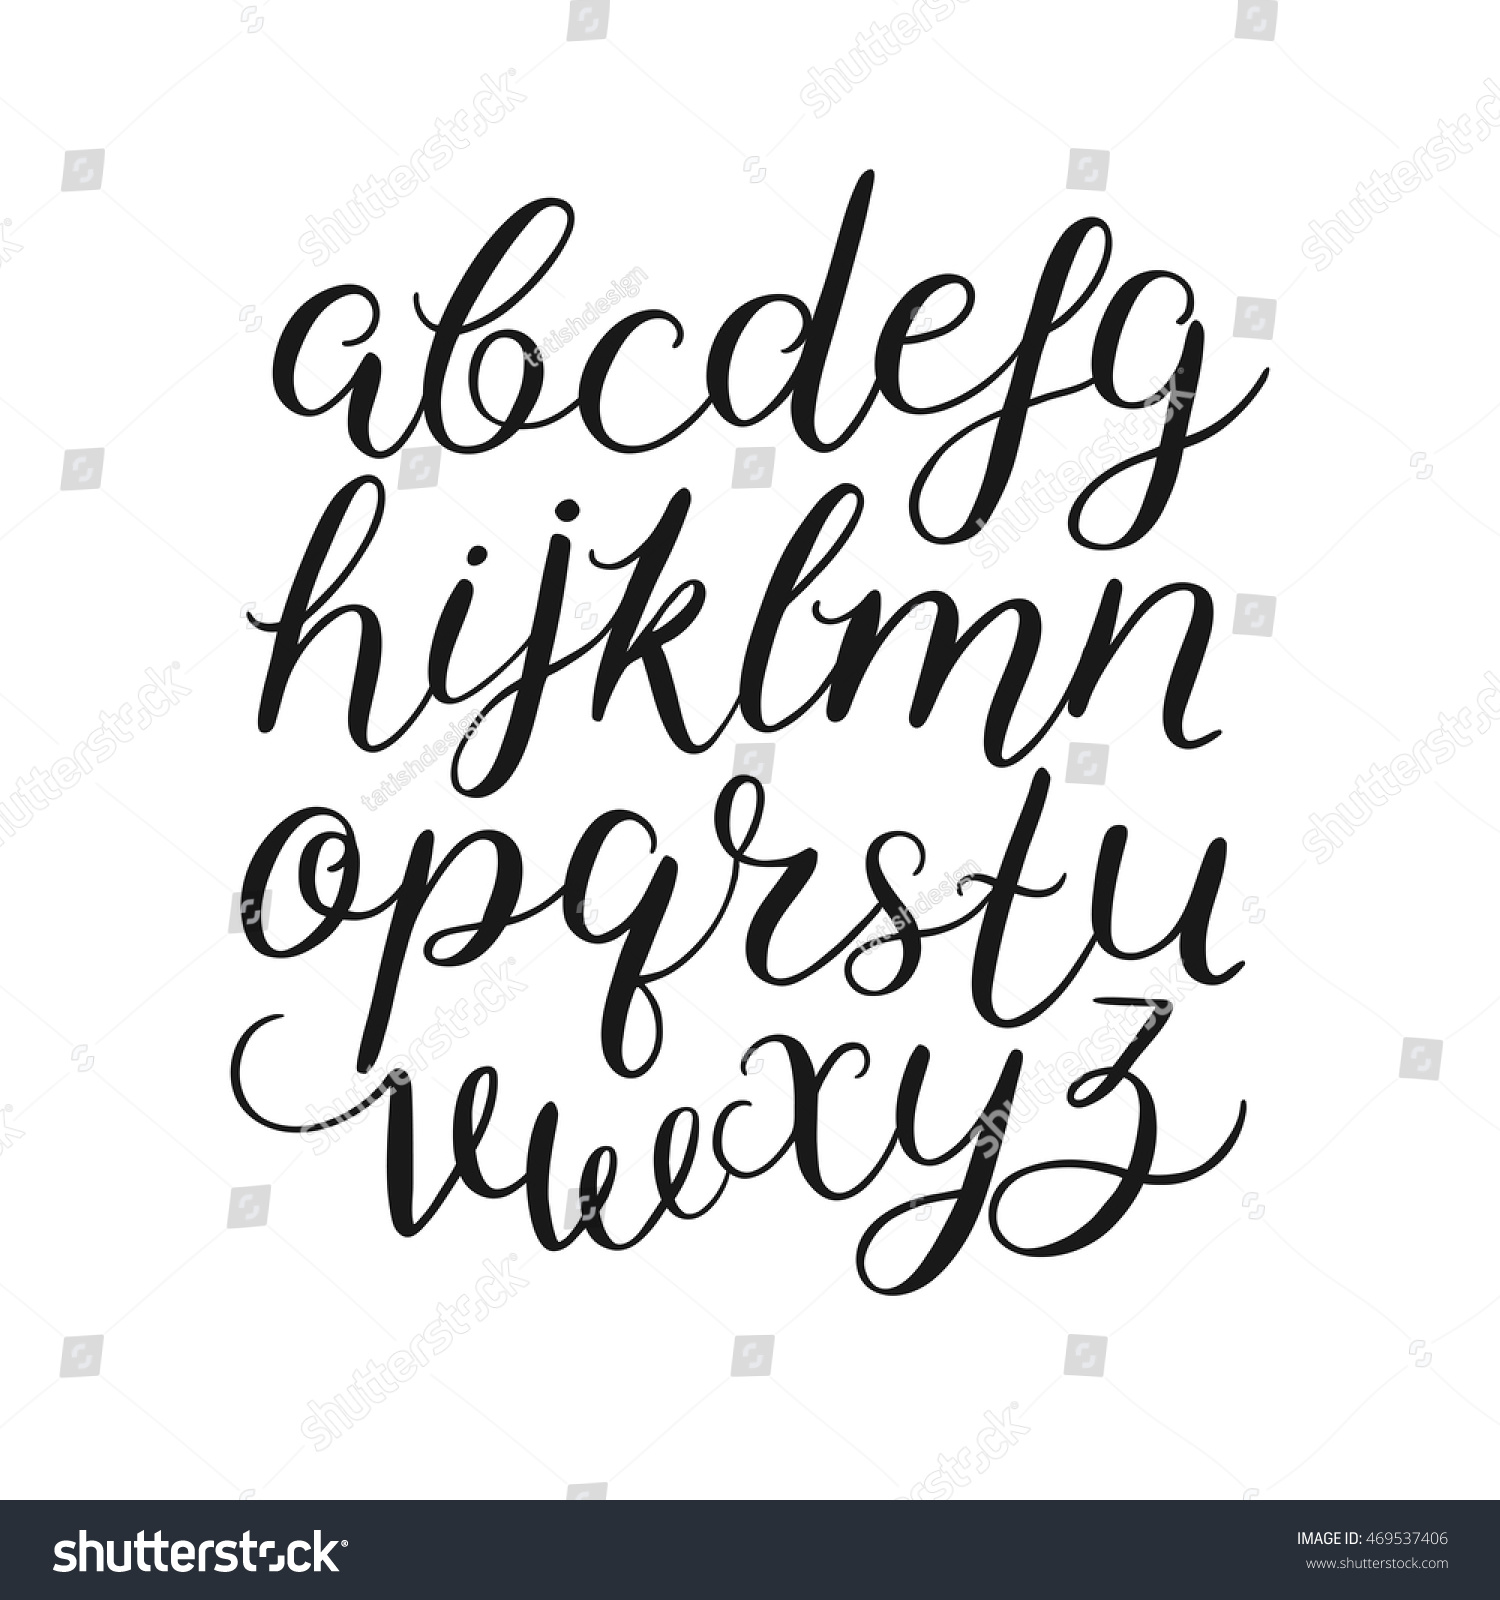 Vector handwritten brush script calligraphy alphabet stock